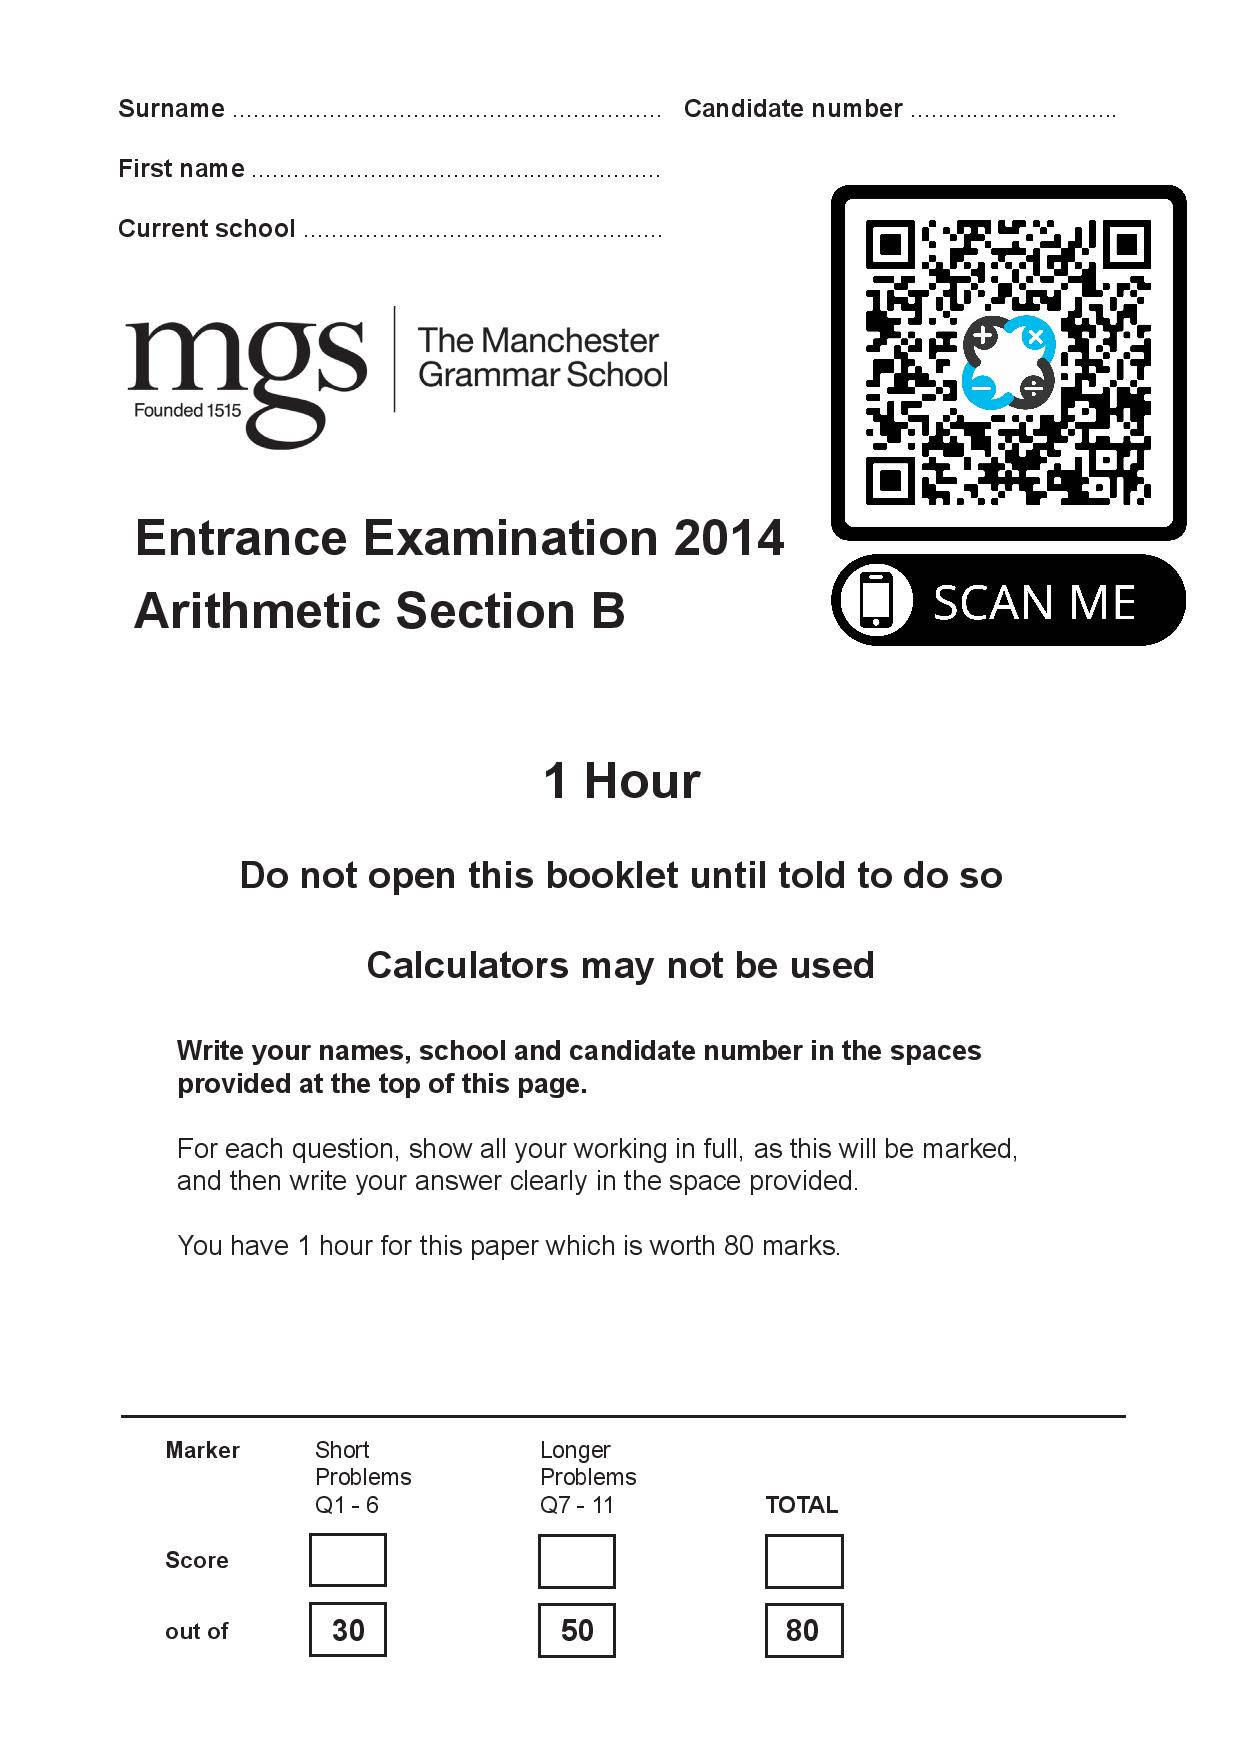 The Manchester Grammar School Entrance Examination 2014 Arithmetic Section B Questions Paper page 001